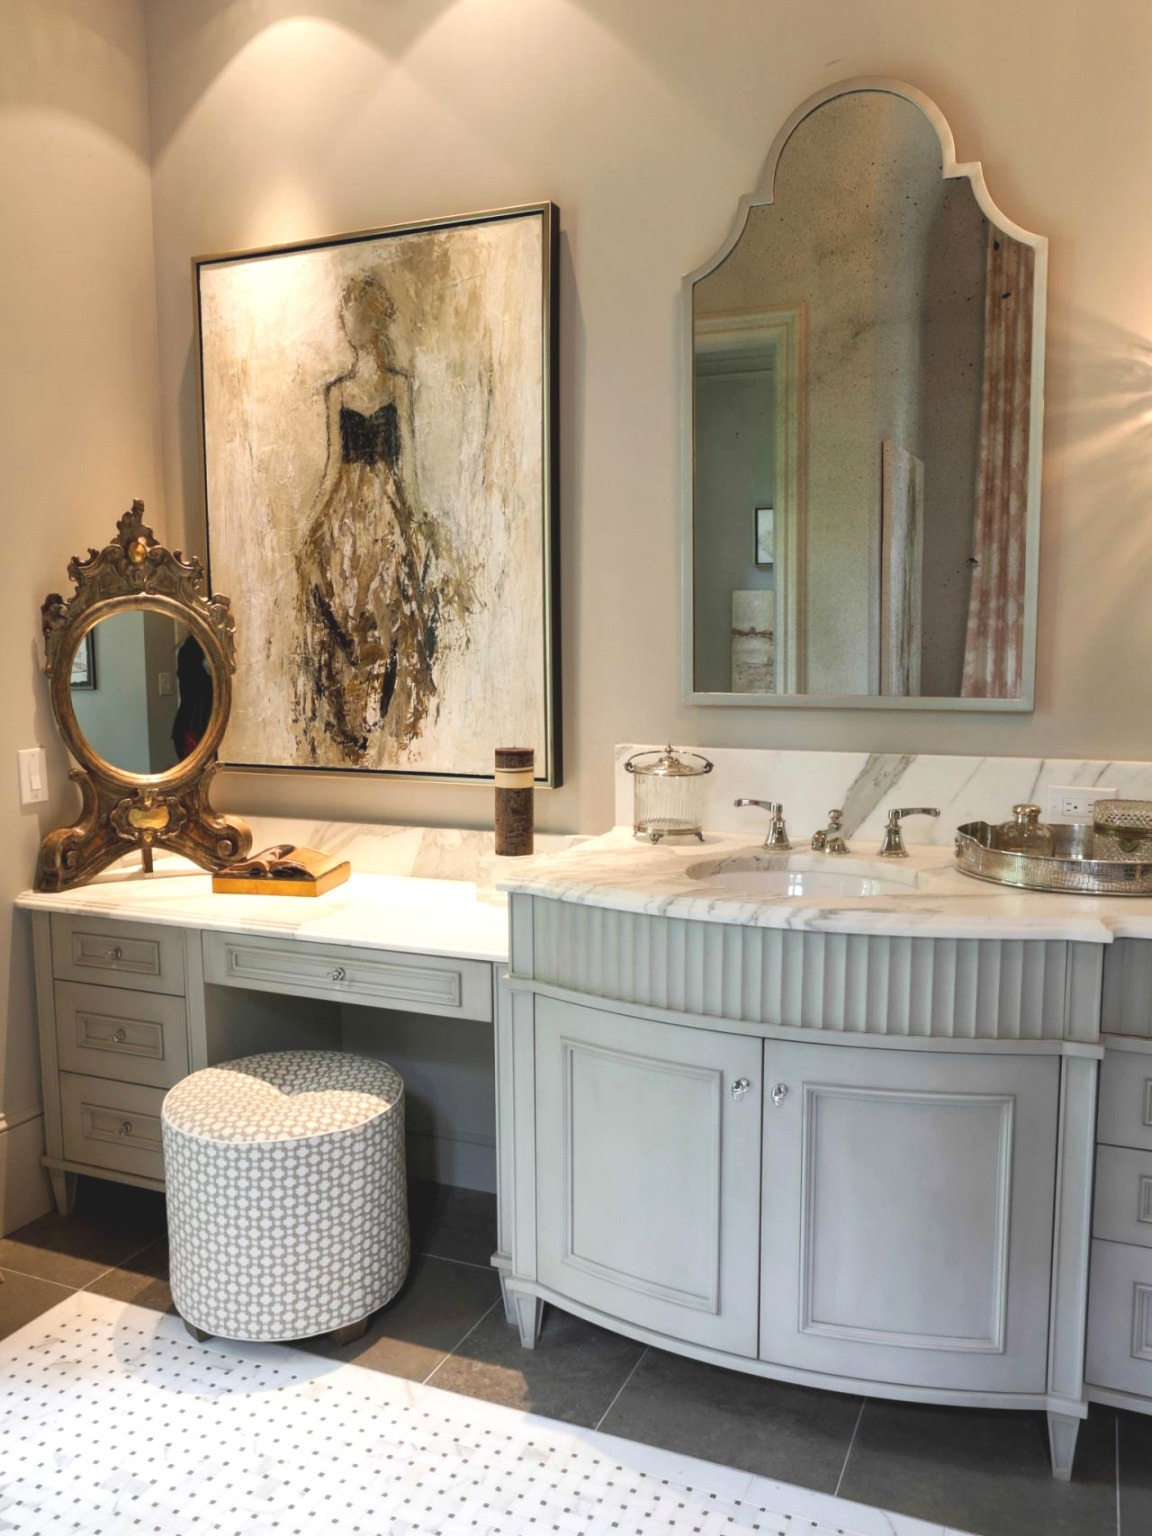 French themed Bathroom Decor Awesome the Five Secrets About French themed Bathroom